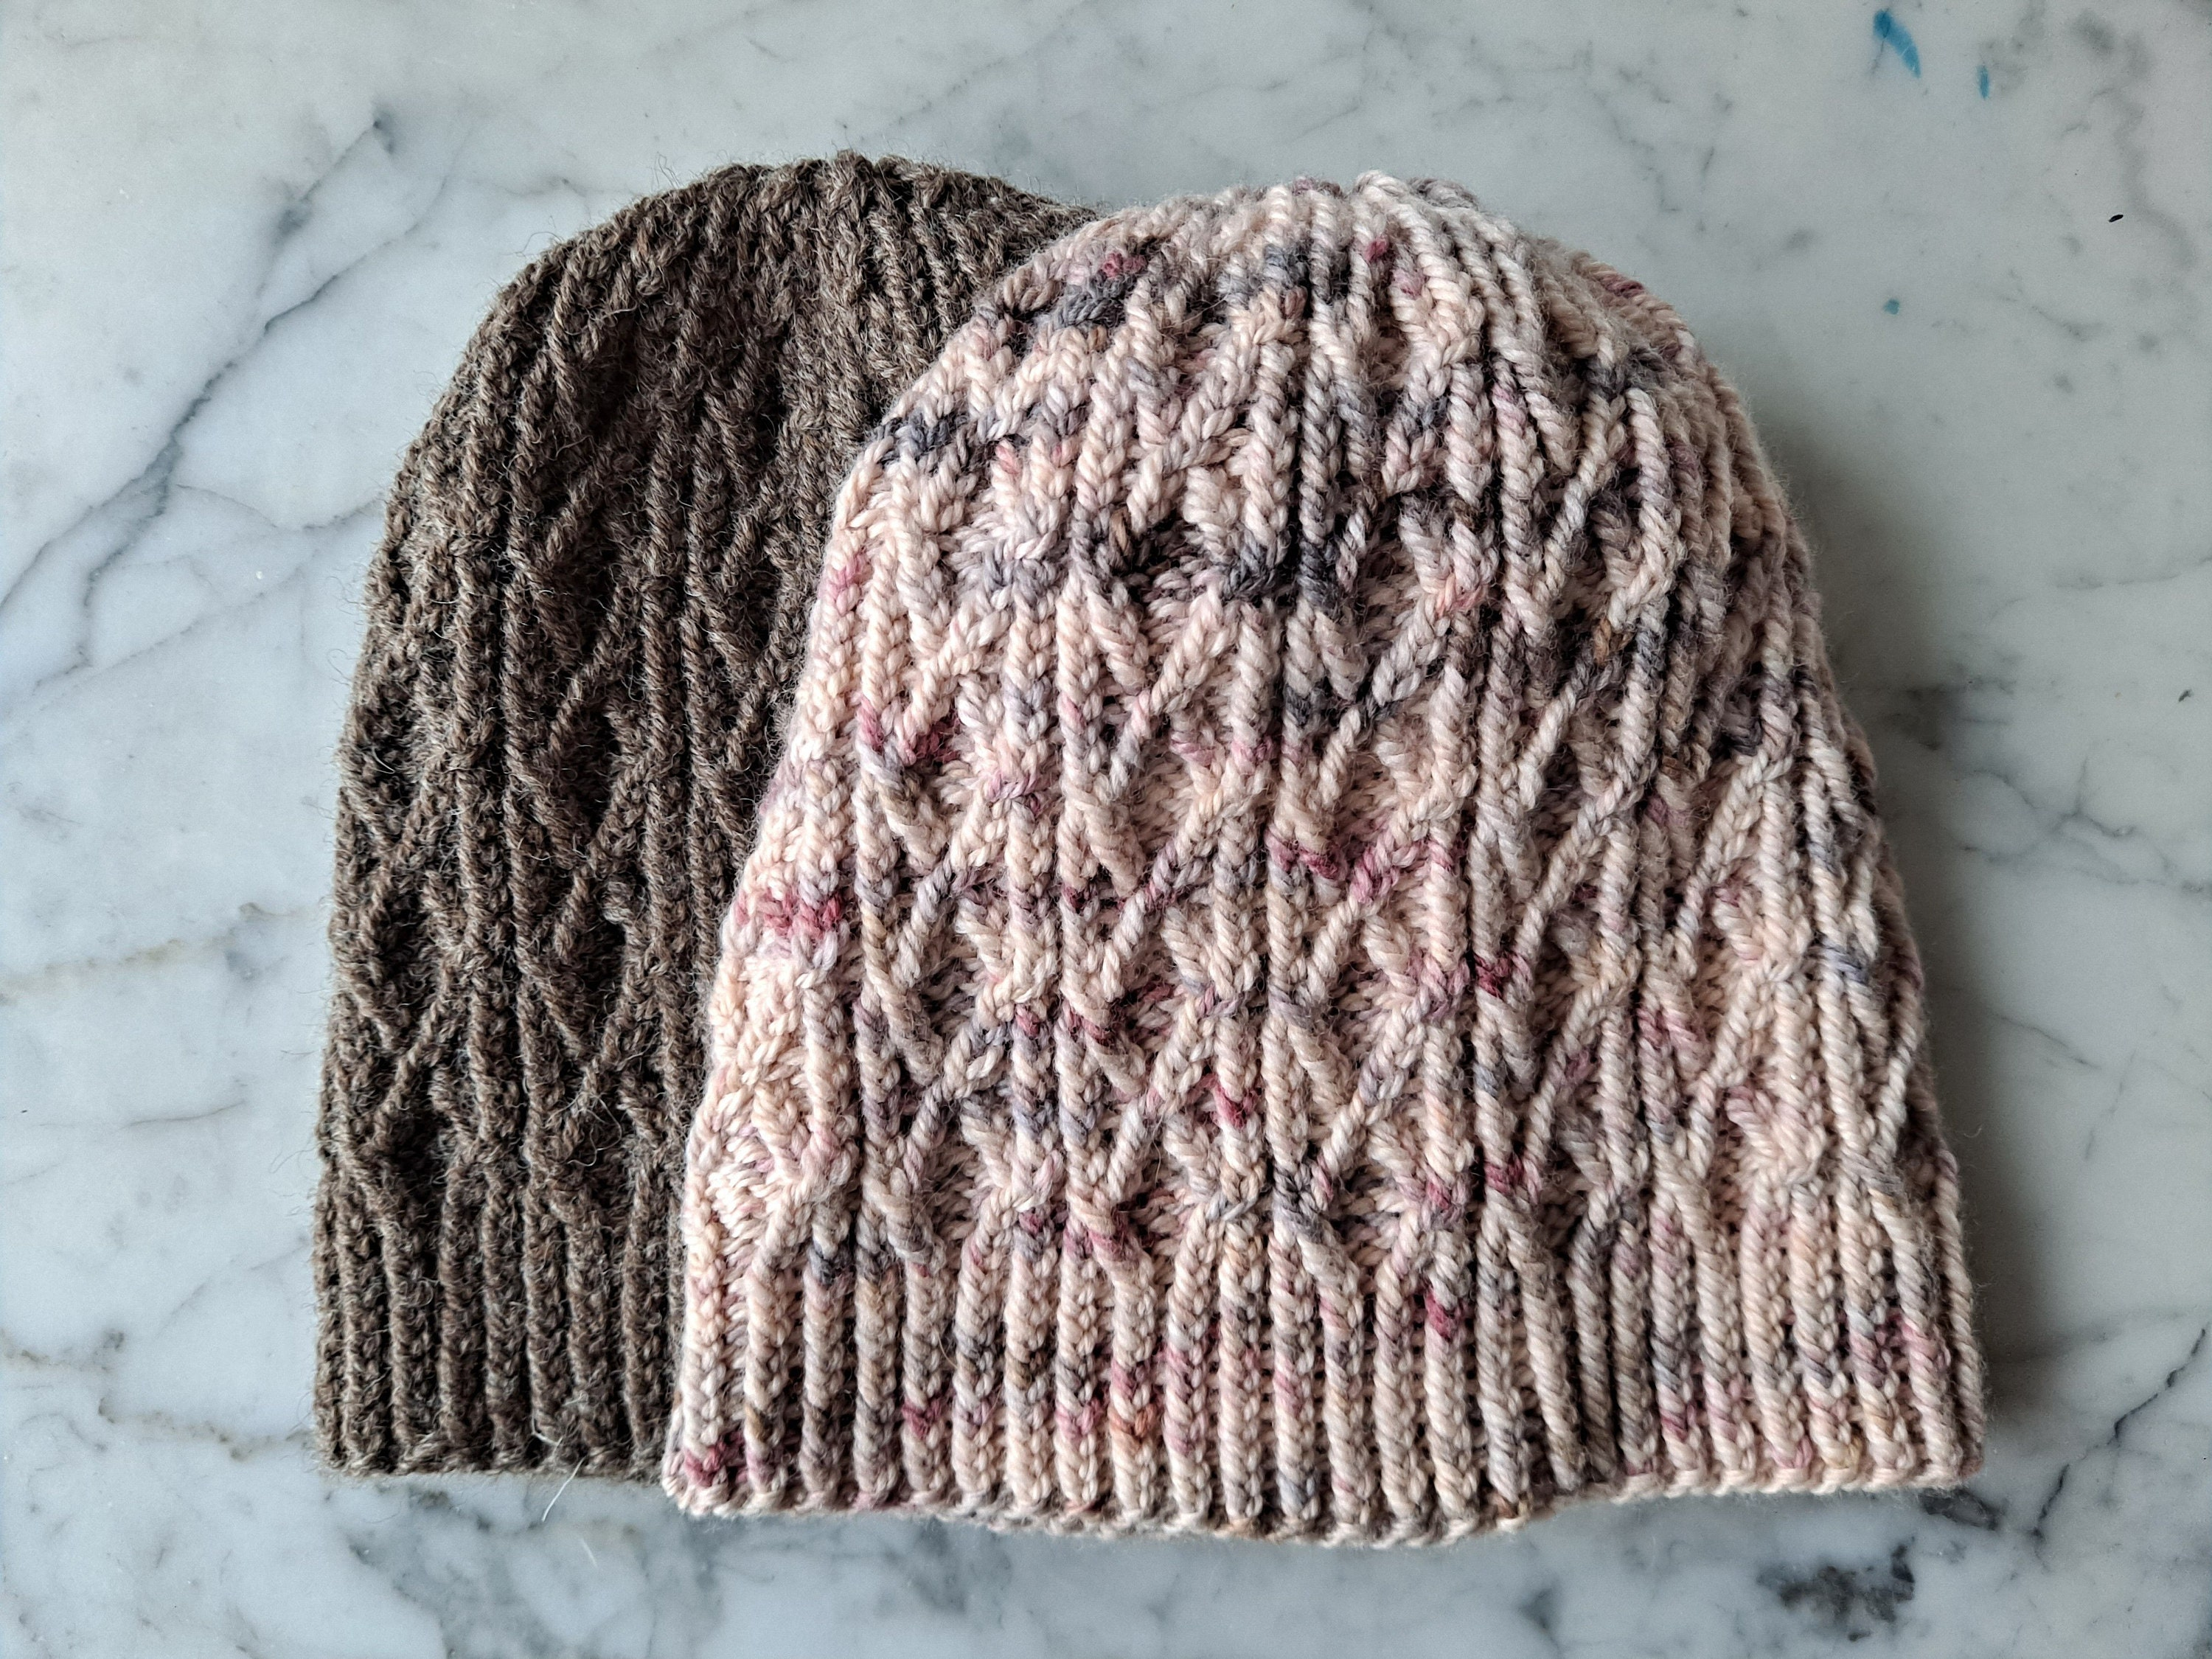 Burren Beanie: two hats lie flat on a marble background. Both feature a cabled lattice pattern.